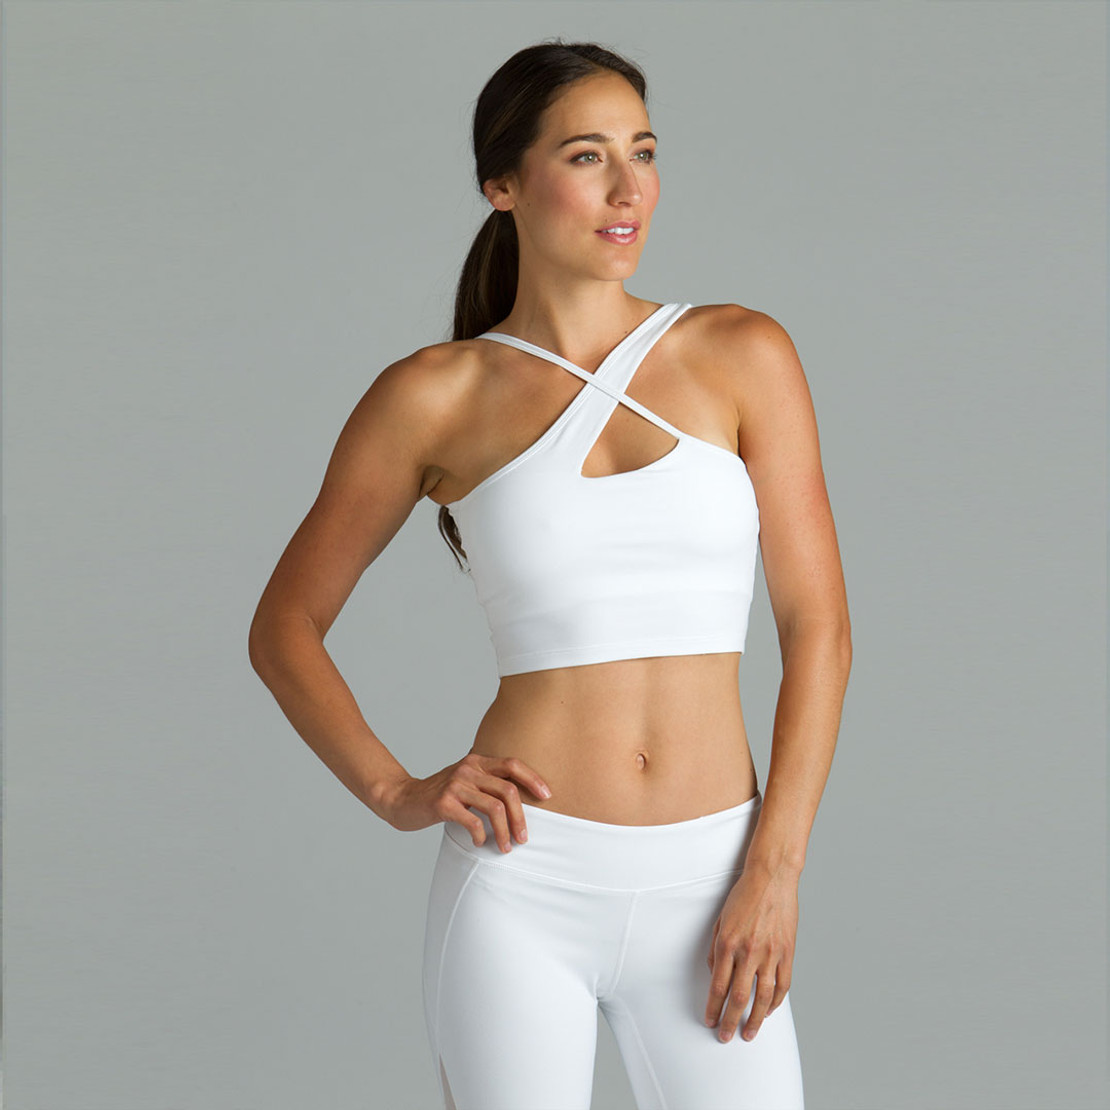 Best Yoga Tops for Large Busts